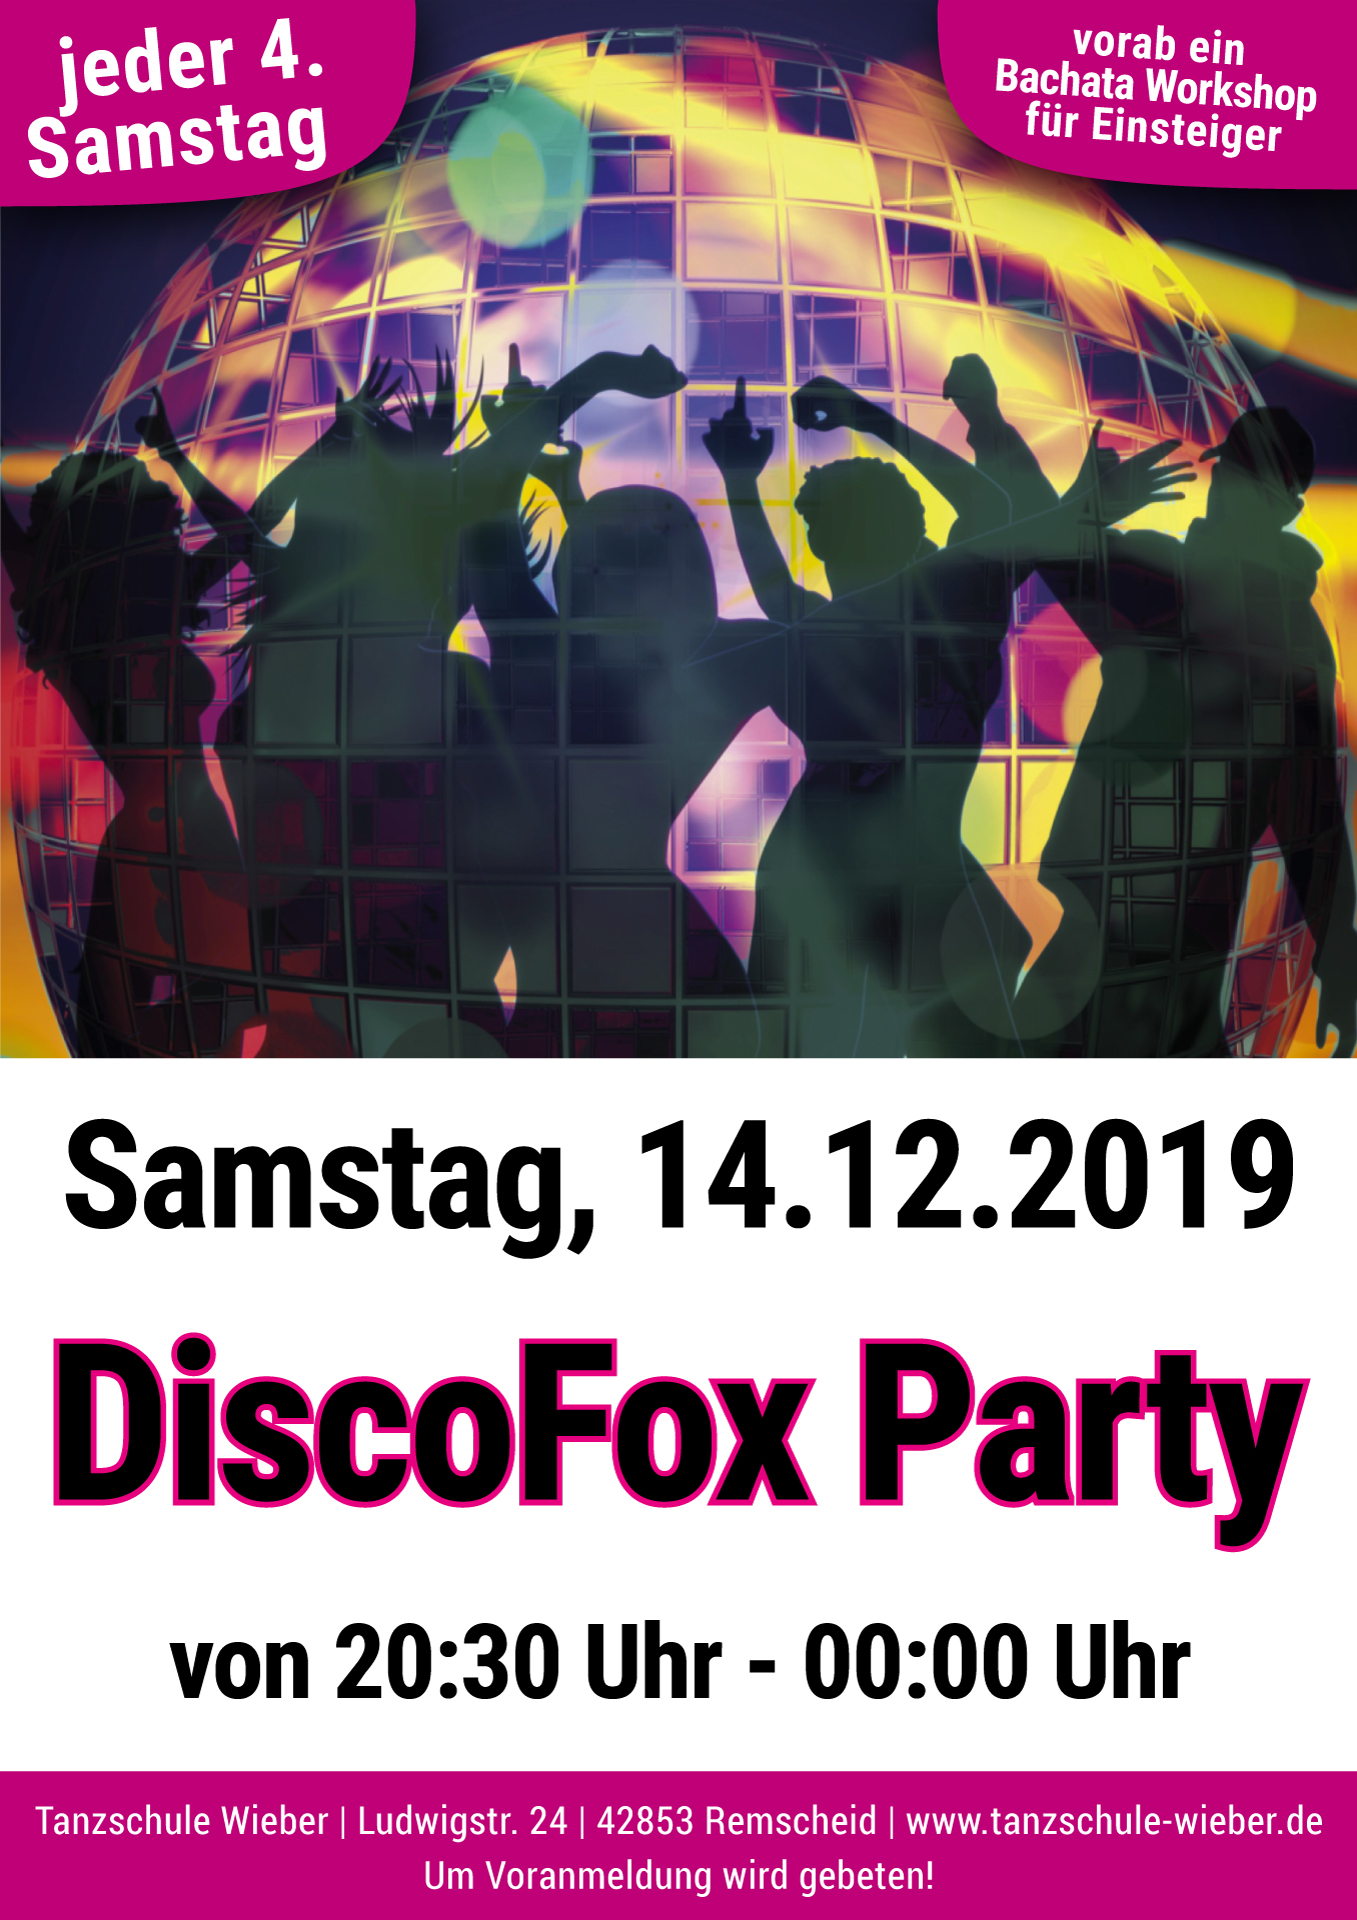 dfparty-flyer_2019_12_14.jpg